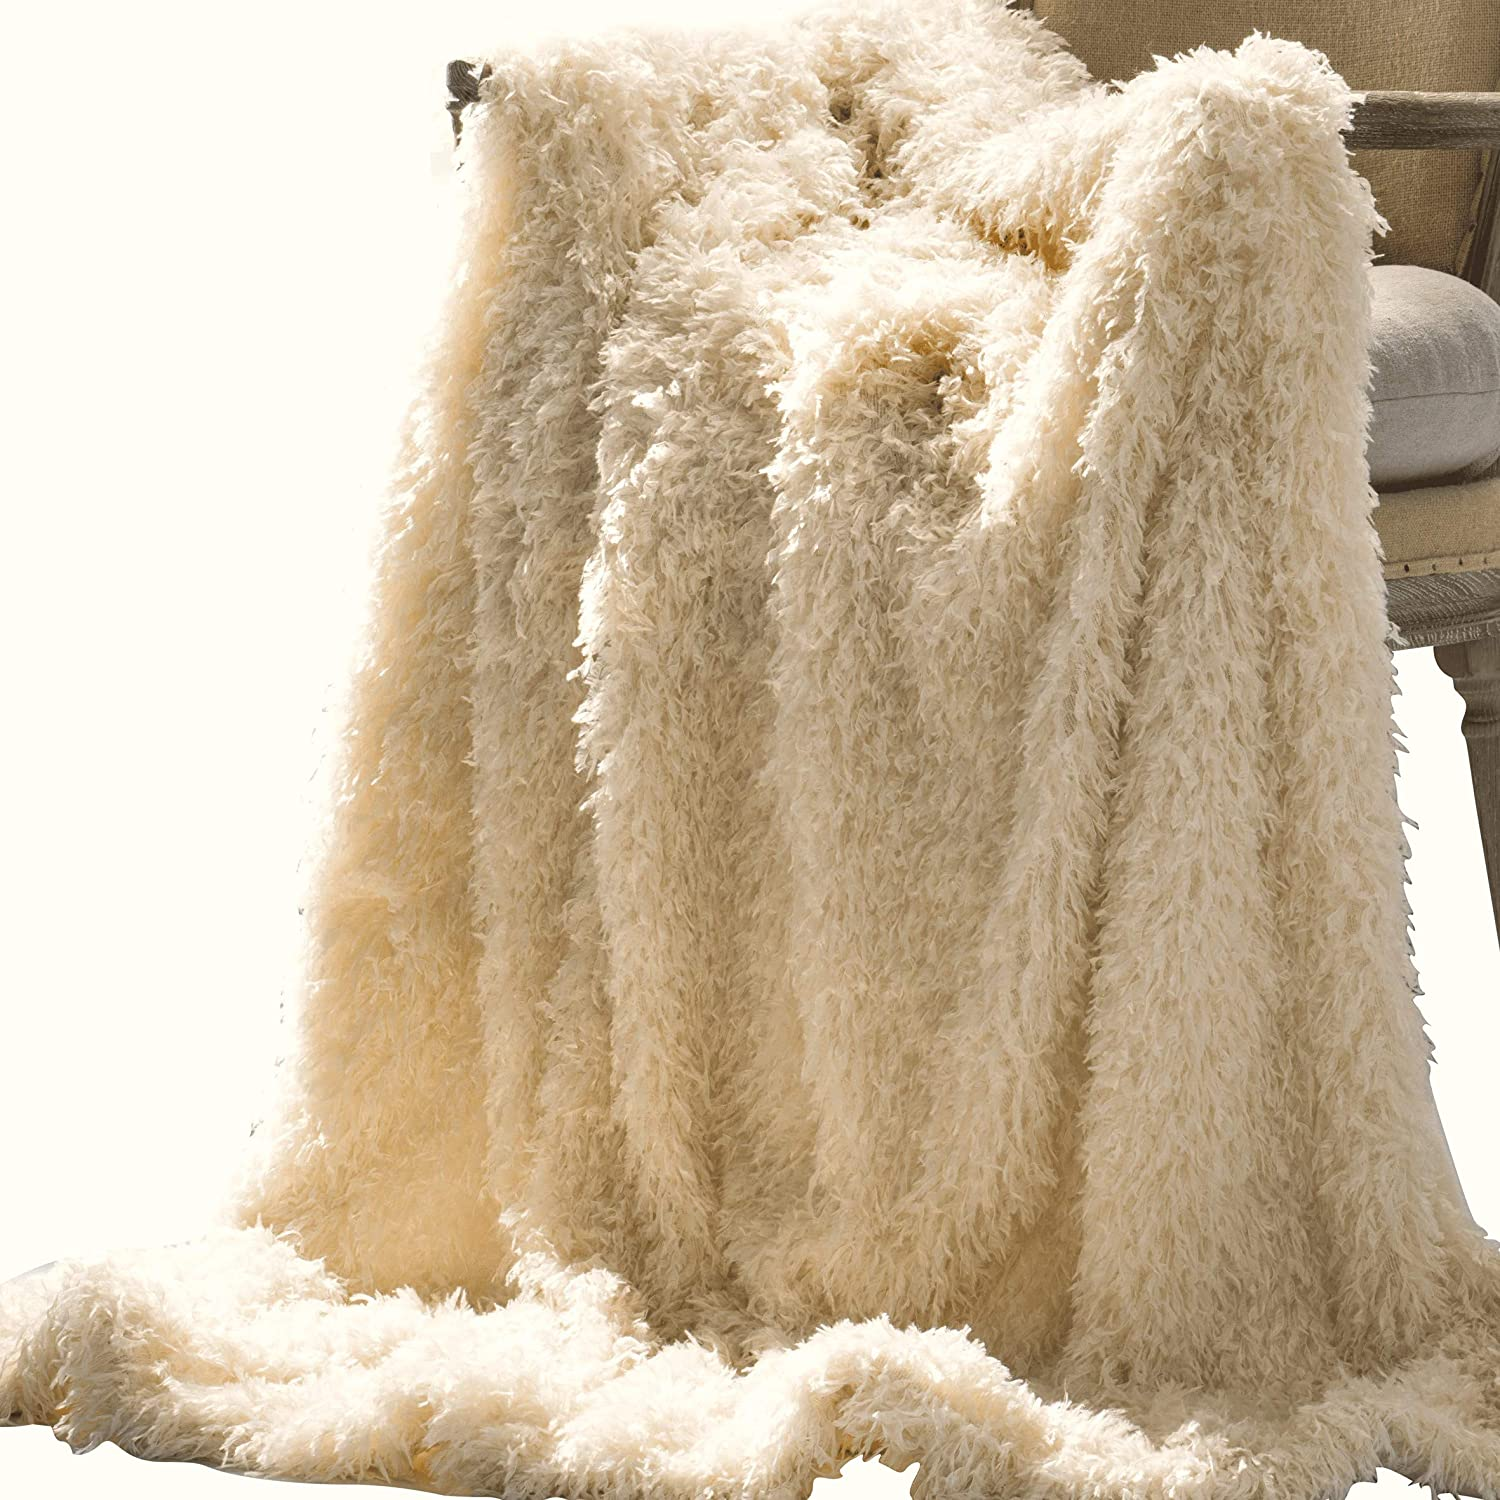 ANVI HOME Furry Throw Blanket   Snuggly Long Fur Lightweight Warm Elegant Cozy Plush Microfiber Blanket   for Couch Bed Chair Photo Props - 50x60 Inches - Cream